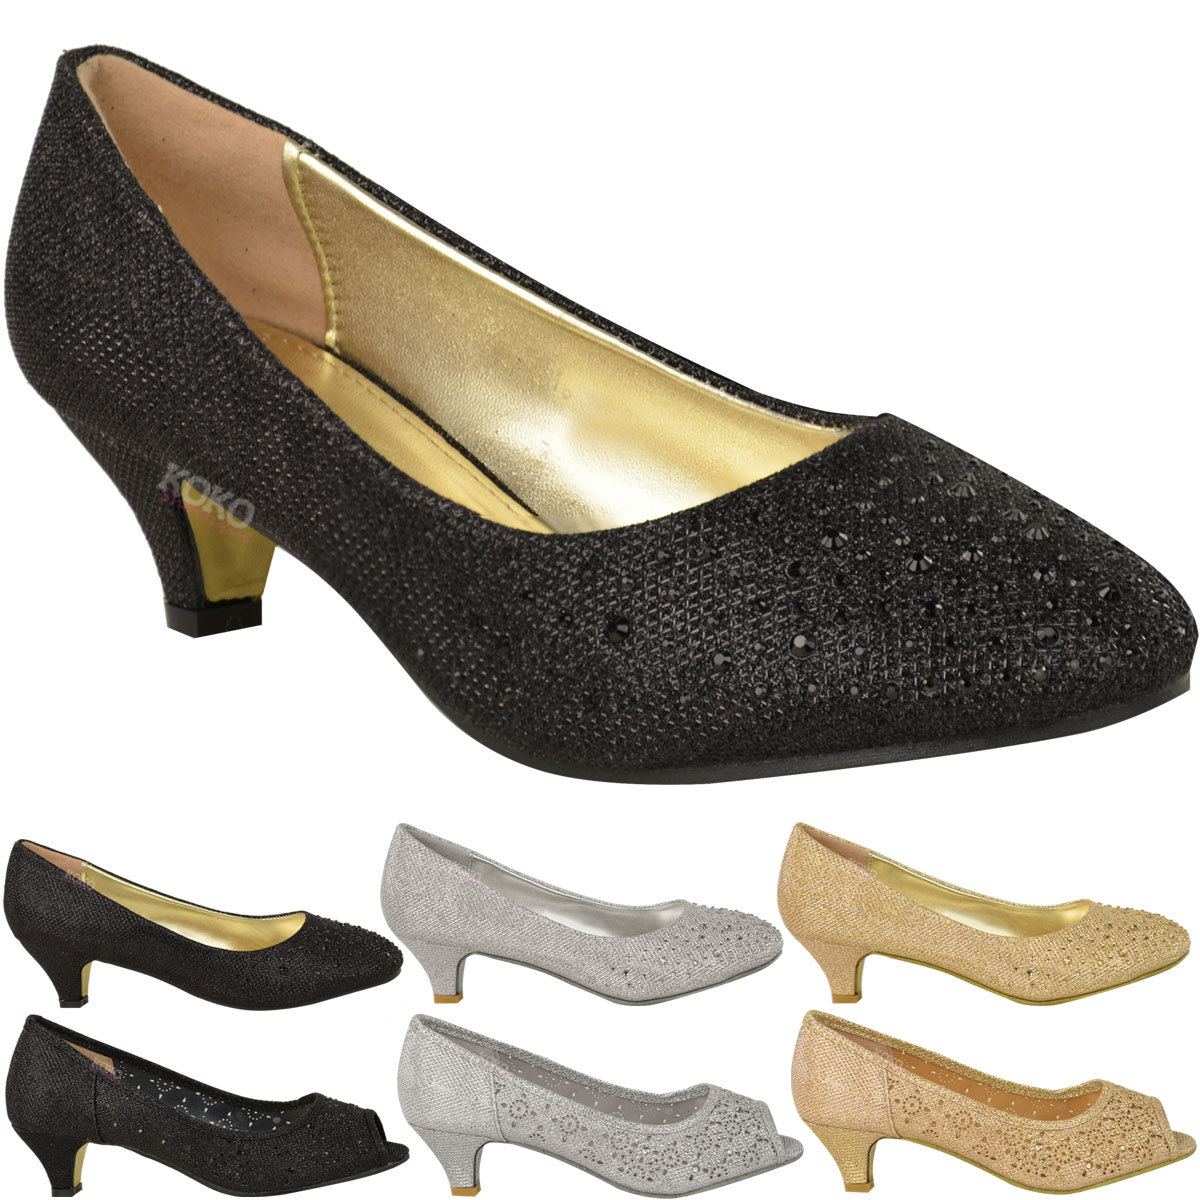 Kitten Heels Court Shoes Open Toe Wedding Diamante Party Size About This Product Picture 1 Of 6 2